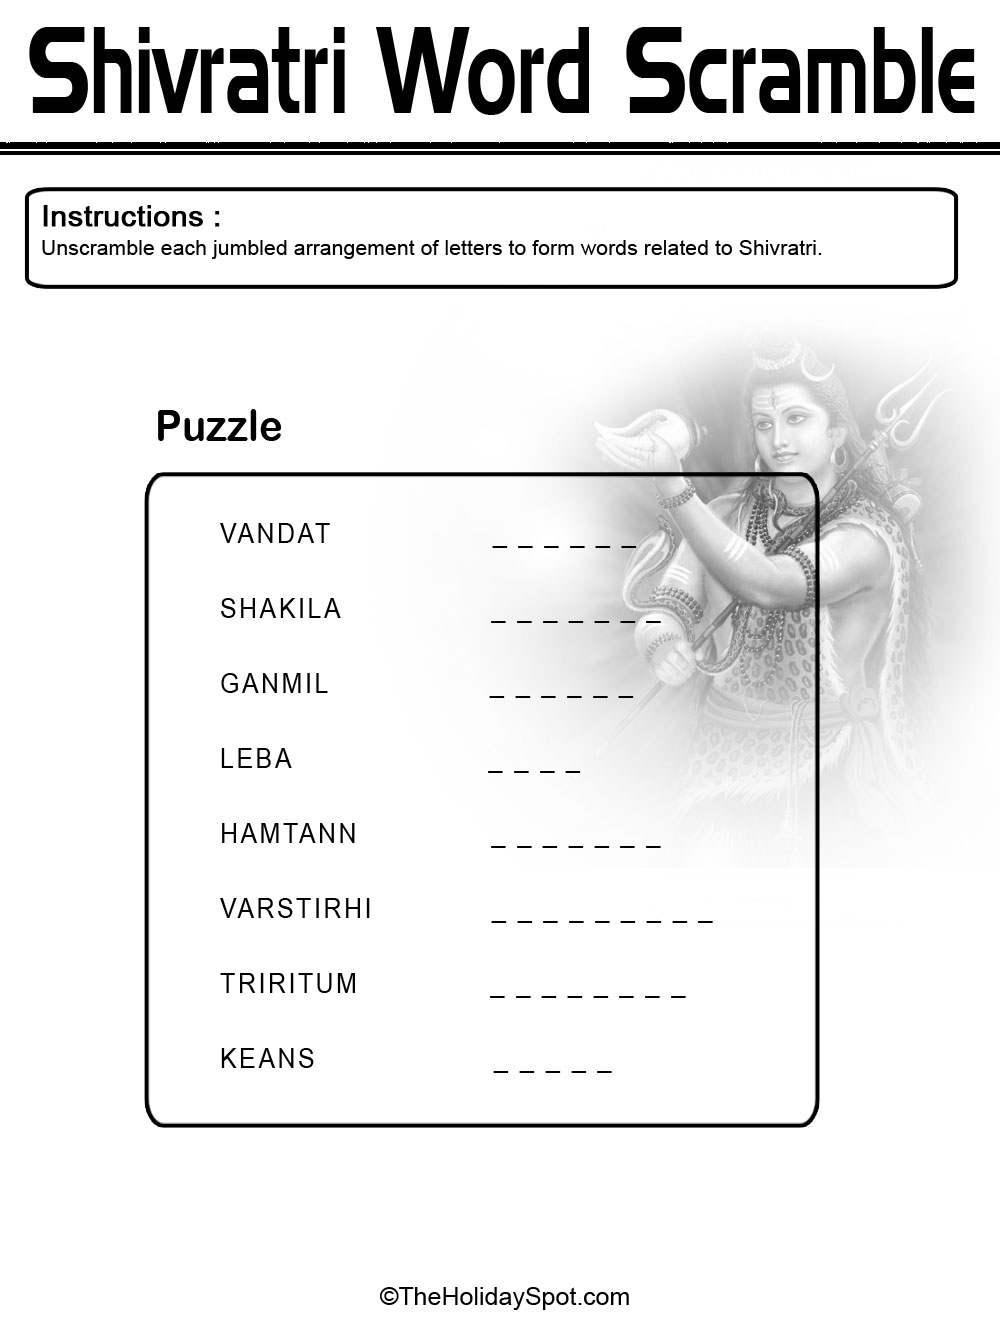 Shivratri Word Scramble Puzzle - Black and White